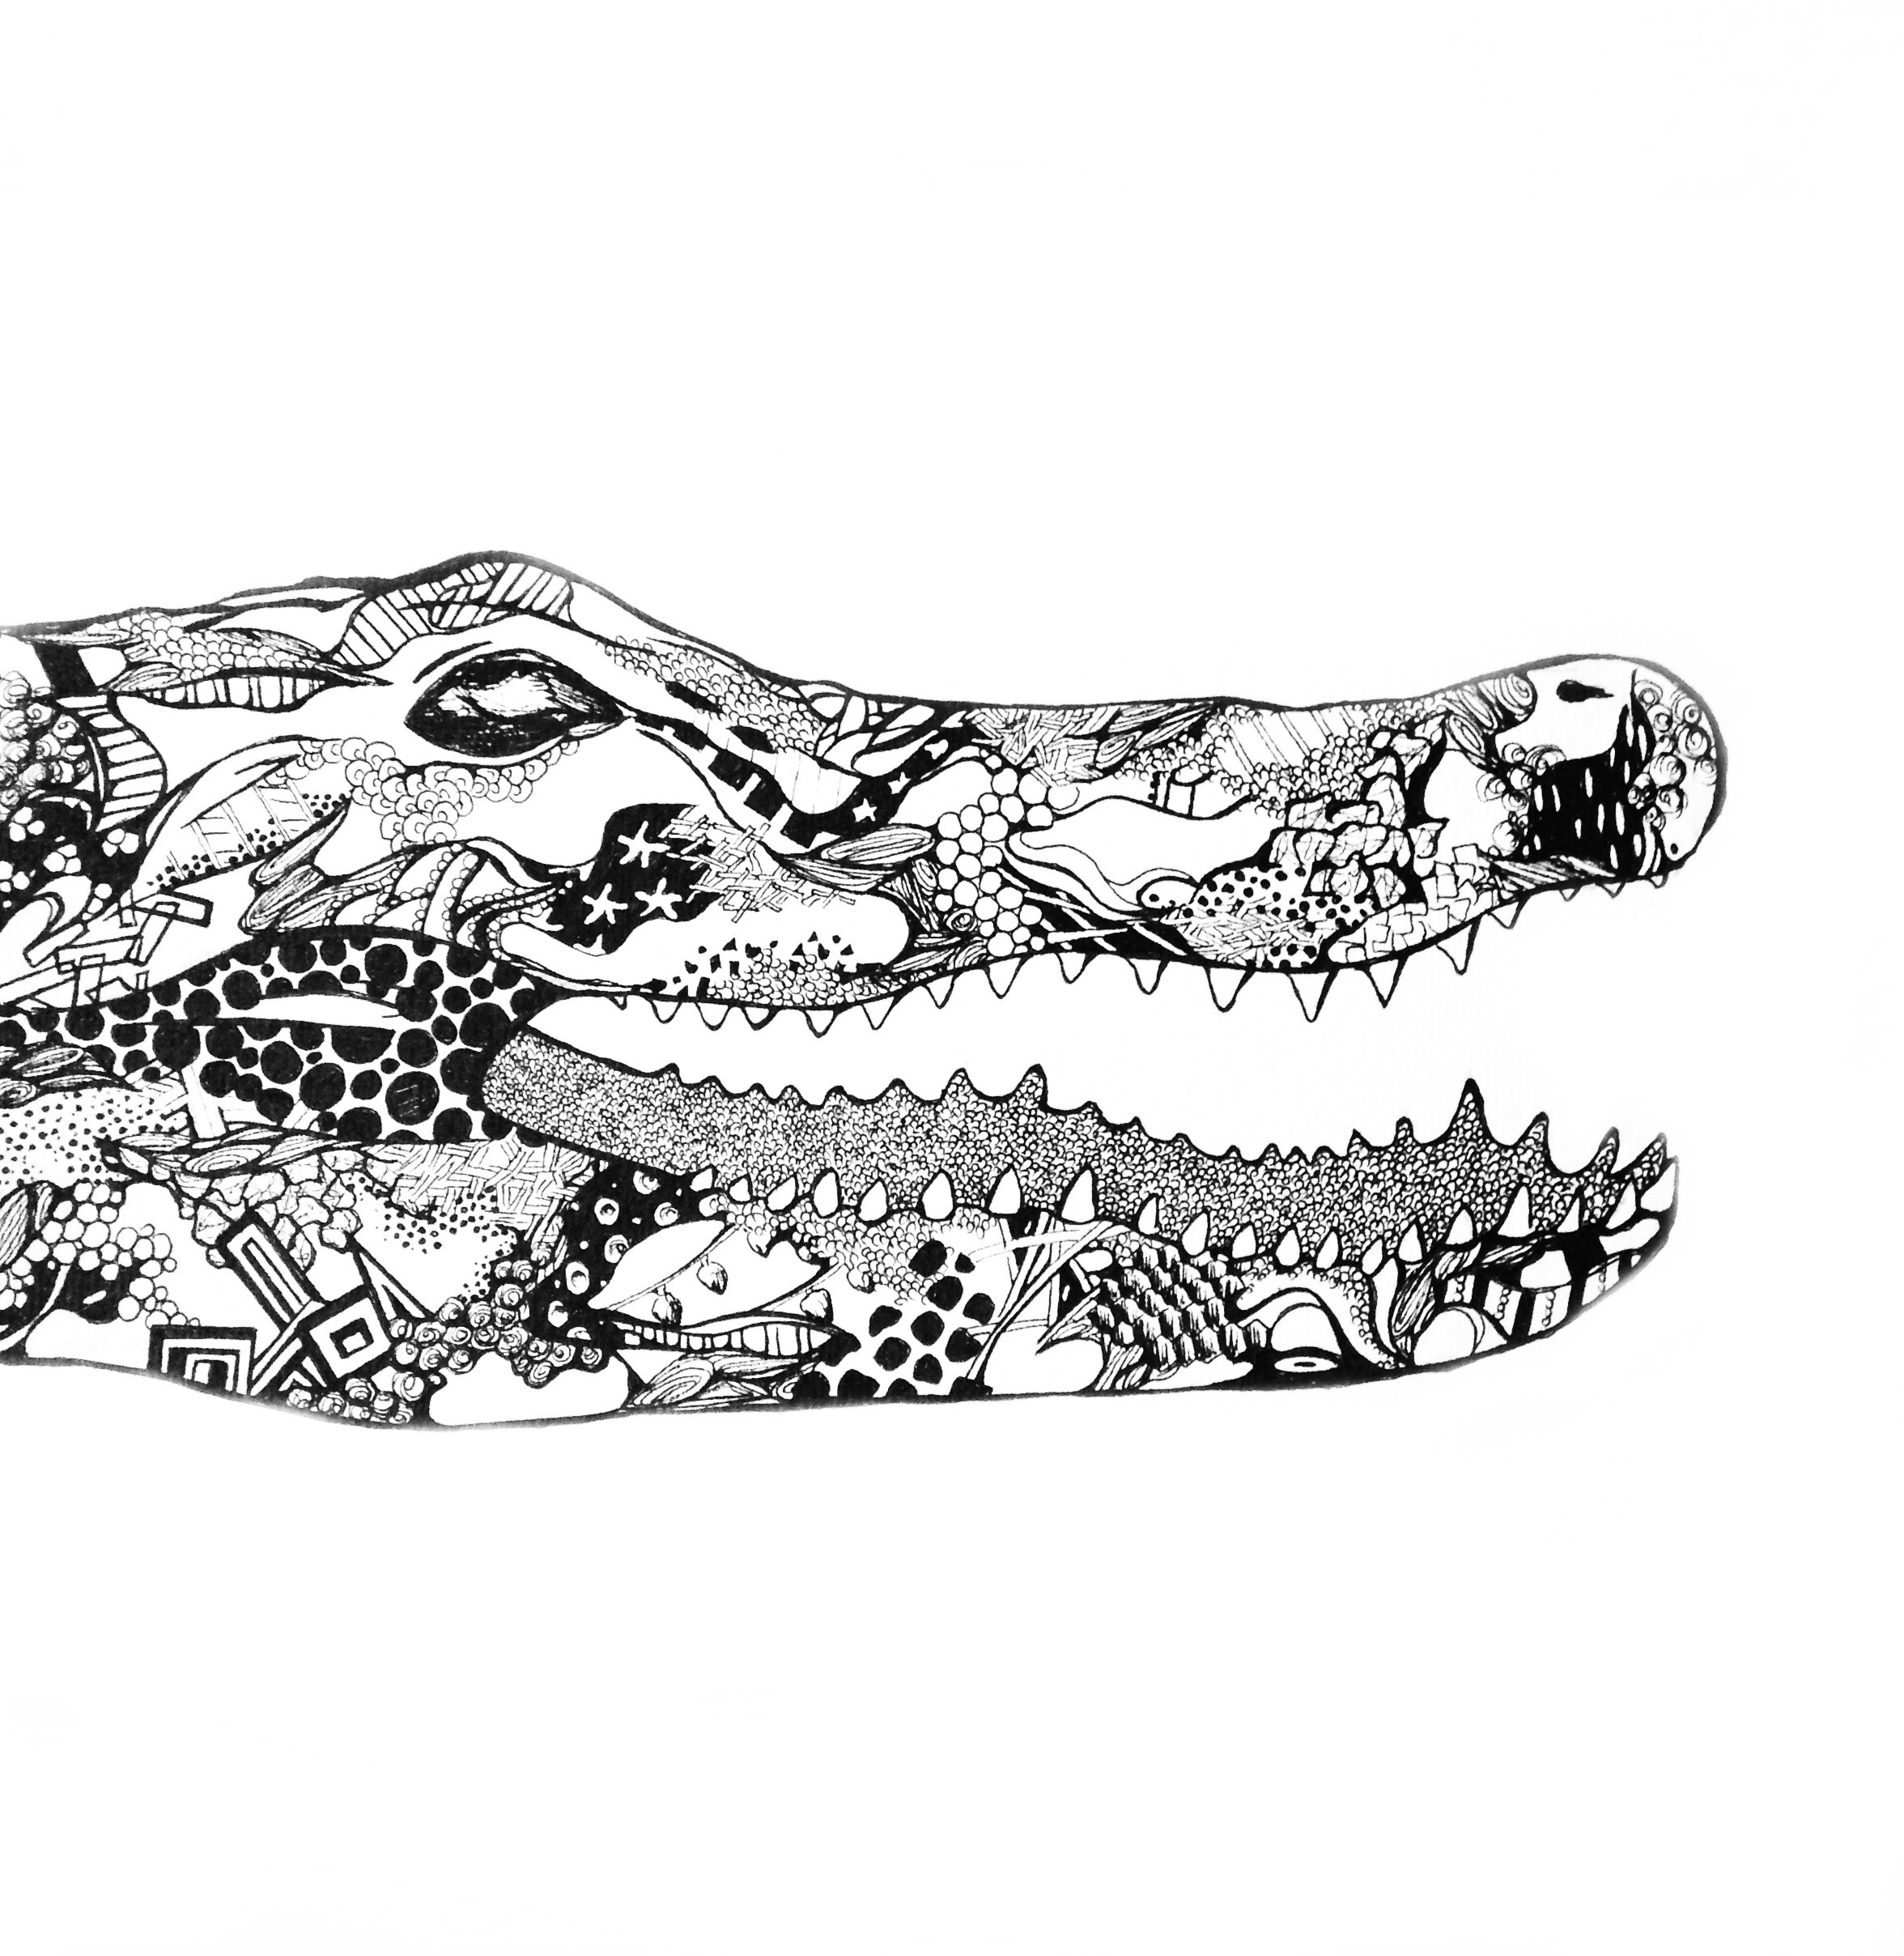 alligator drawing cartoon pictures how to draw an alligator in 6 steps drawing alligator